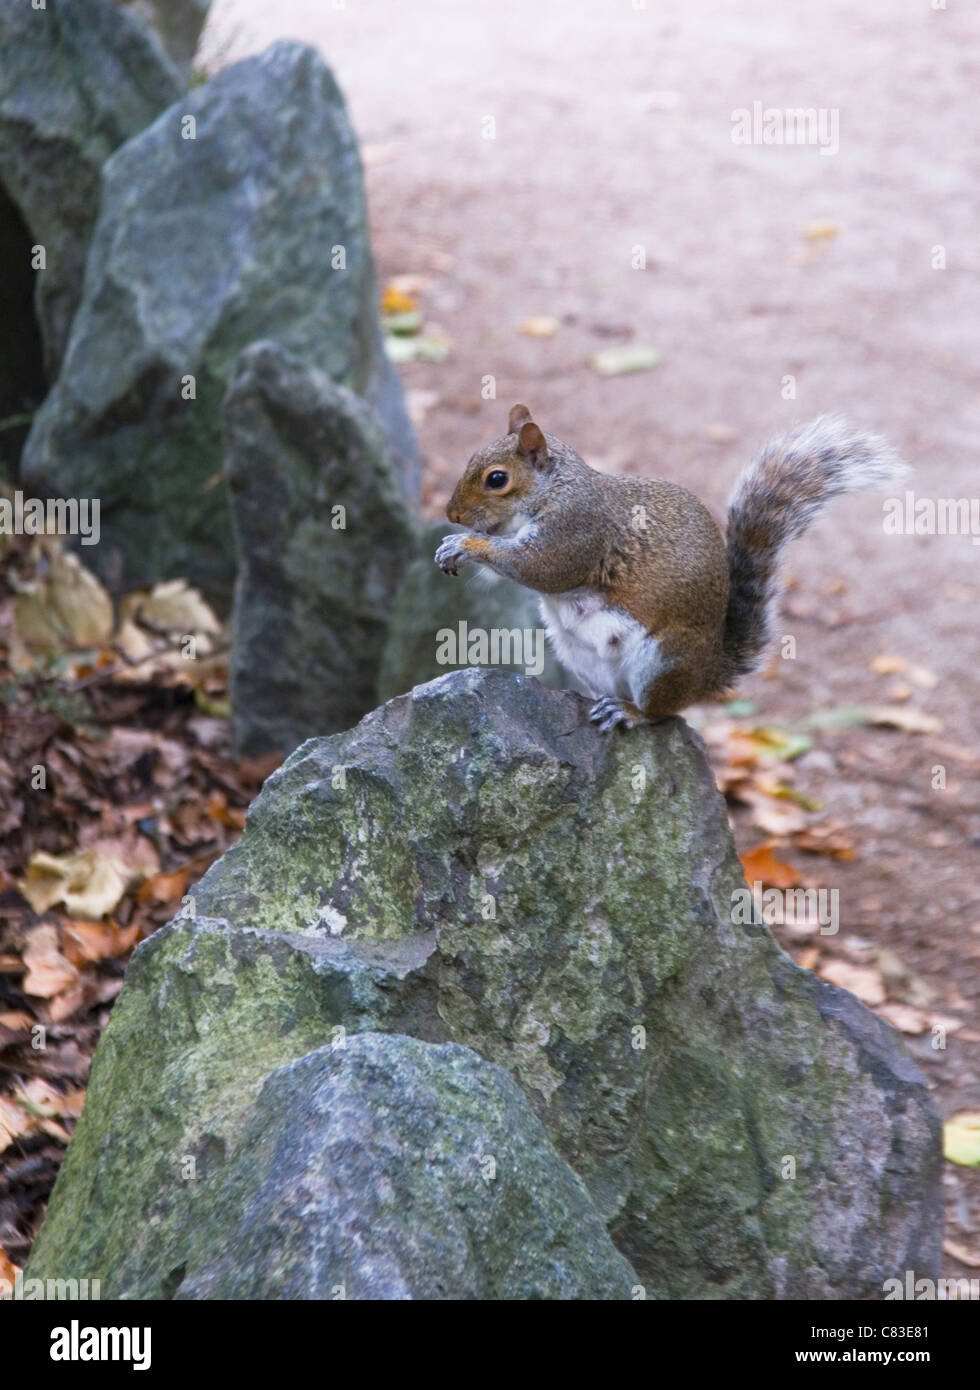 grey squirrel sitting on a rock in autumn - Stock Image